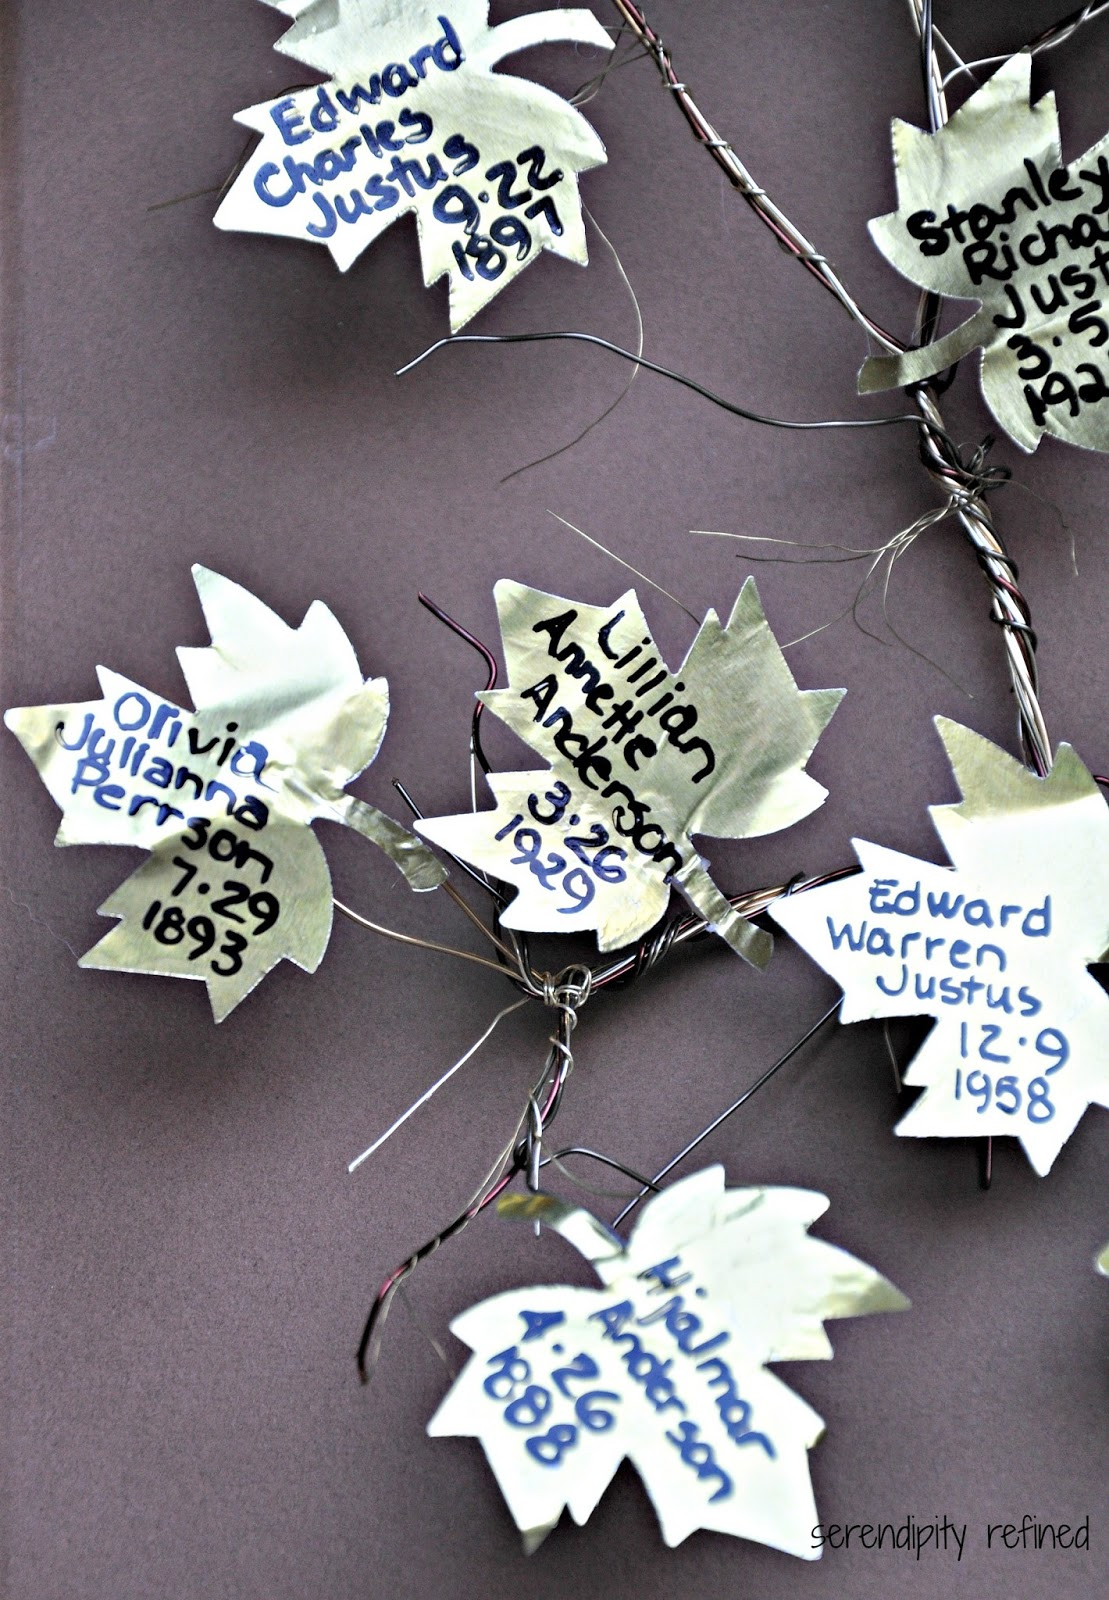 Serendipity Refined Blog: How to Make A Four Generation Family Tree